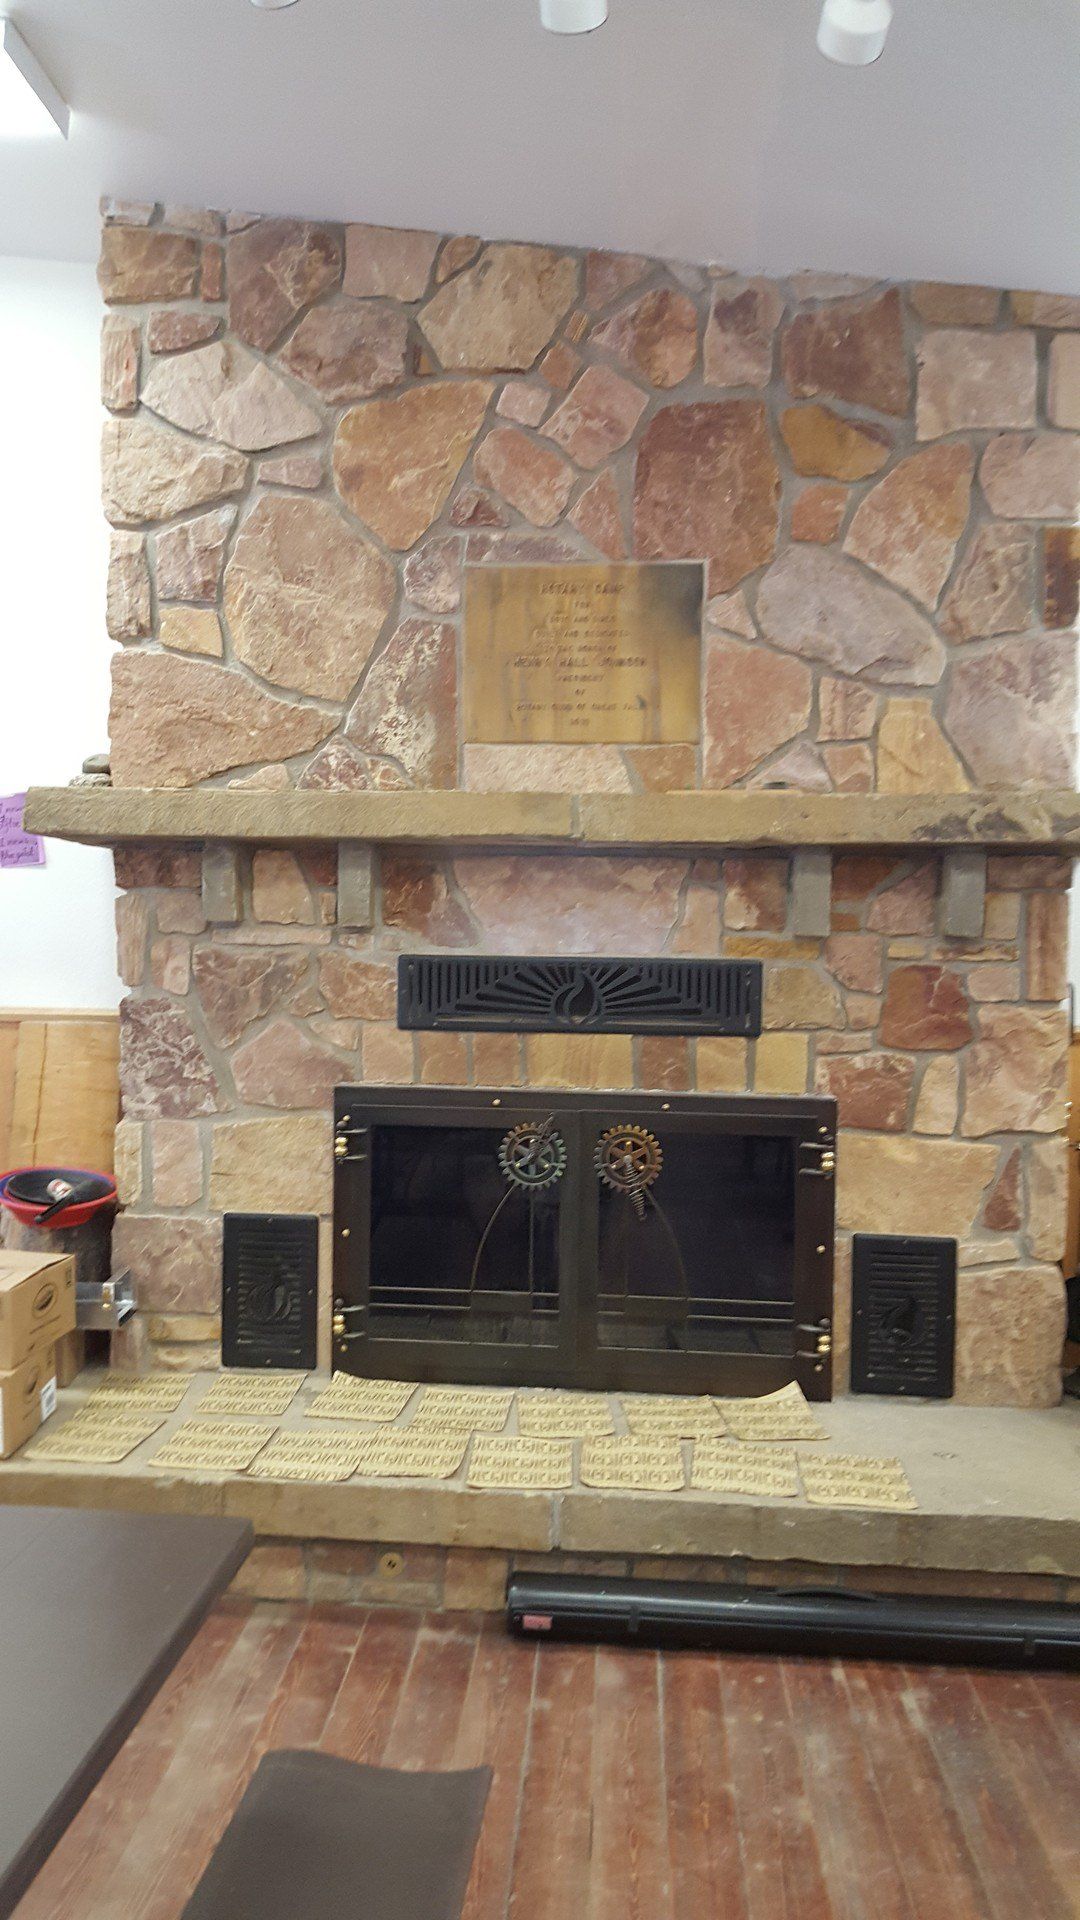 3- Fireplace With Plaque